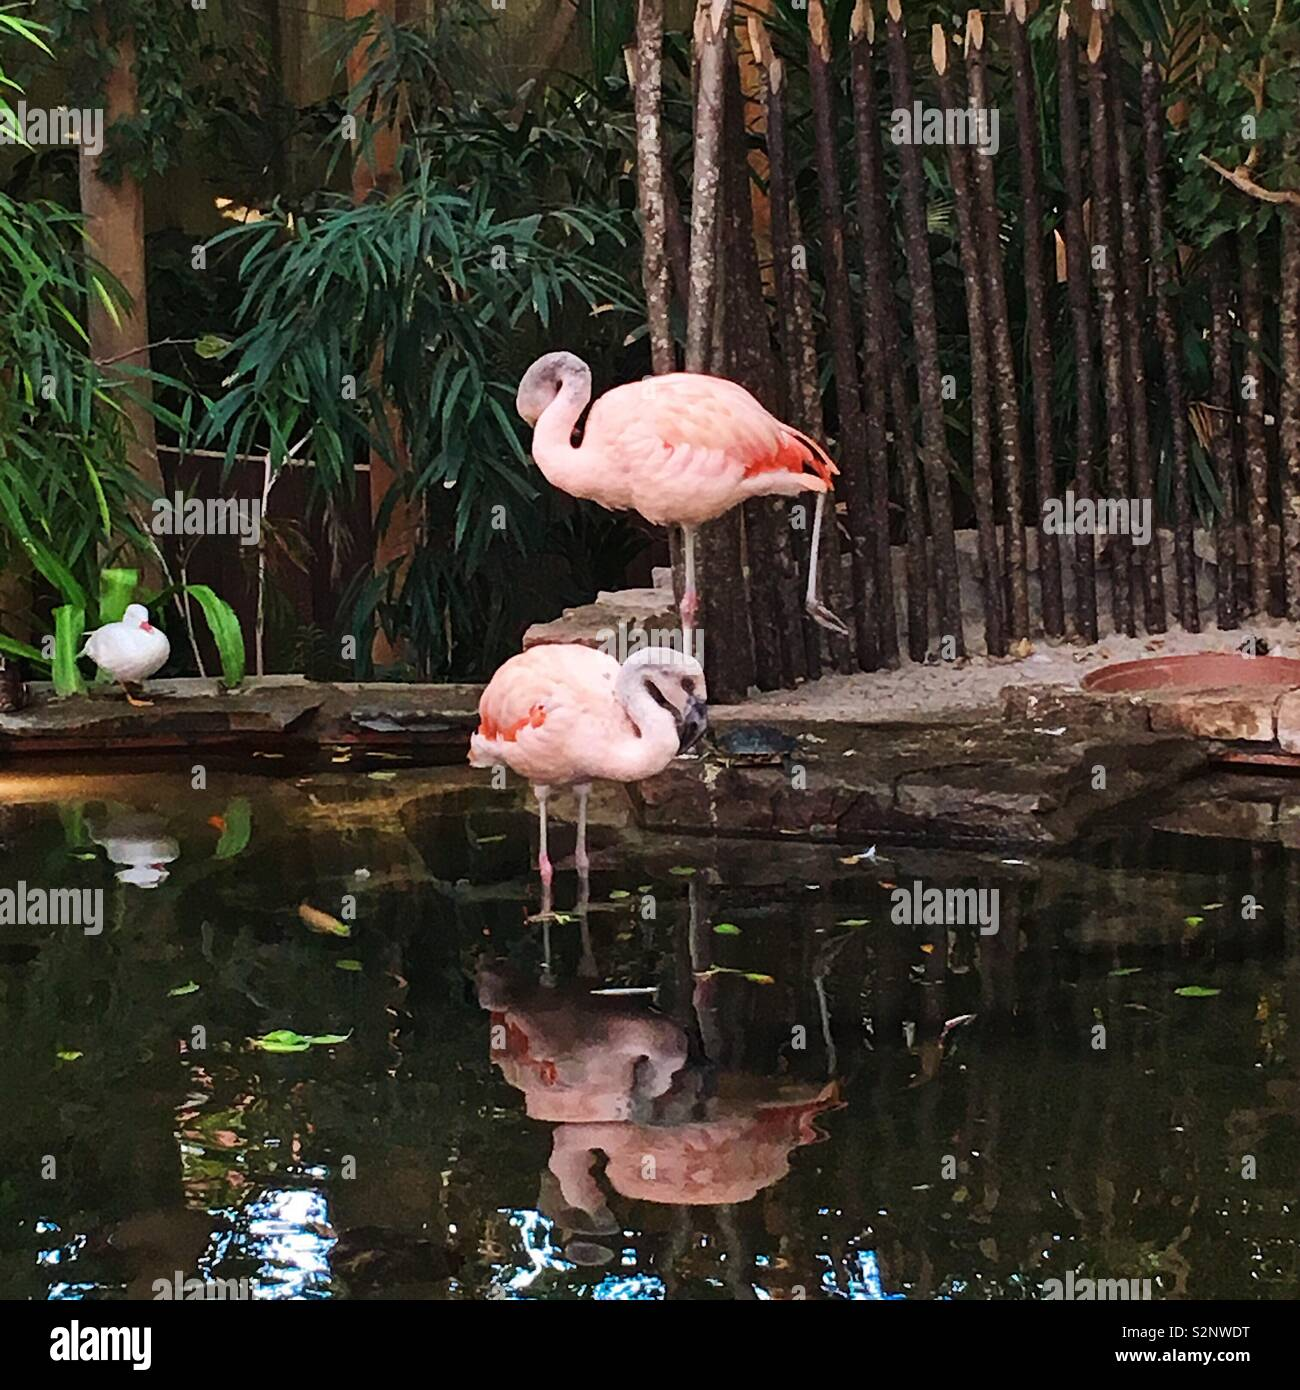 Flamingos hanging out at port Zealand's, Netherlands - Stock Image